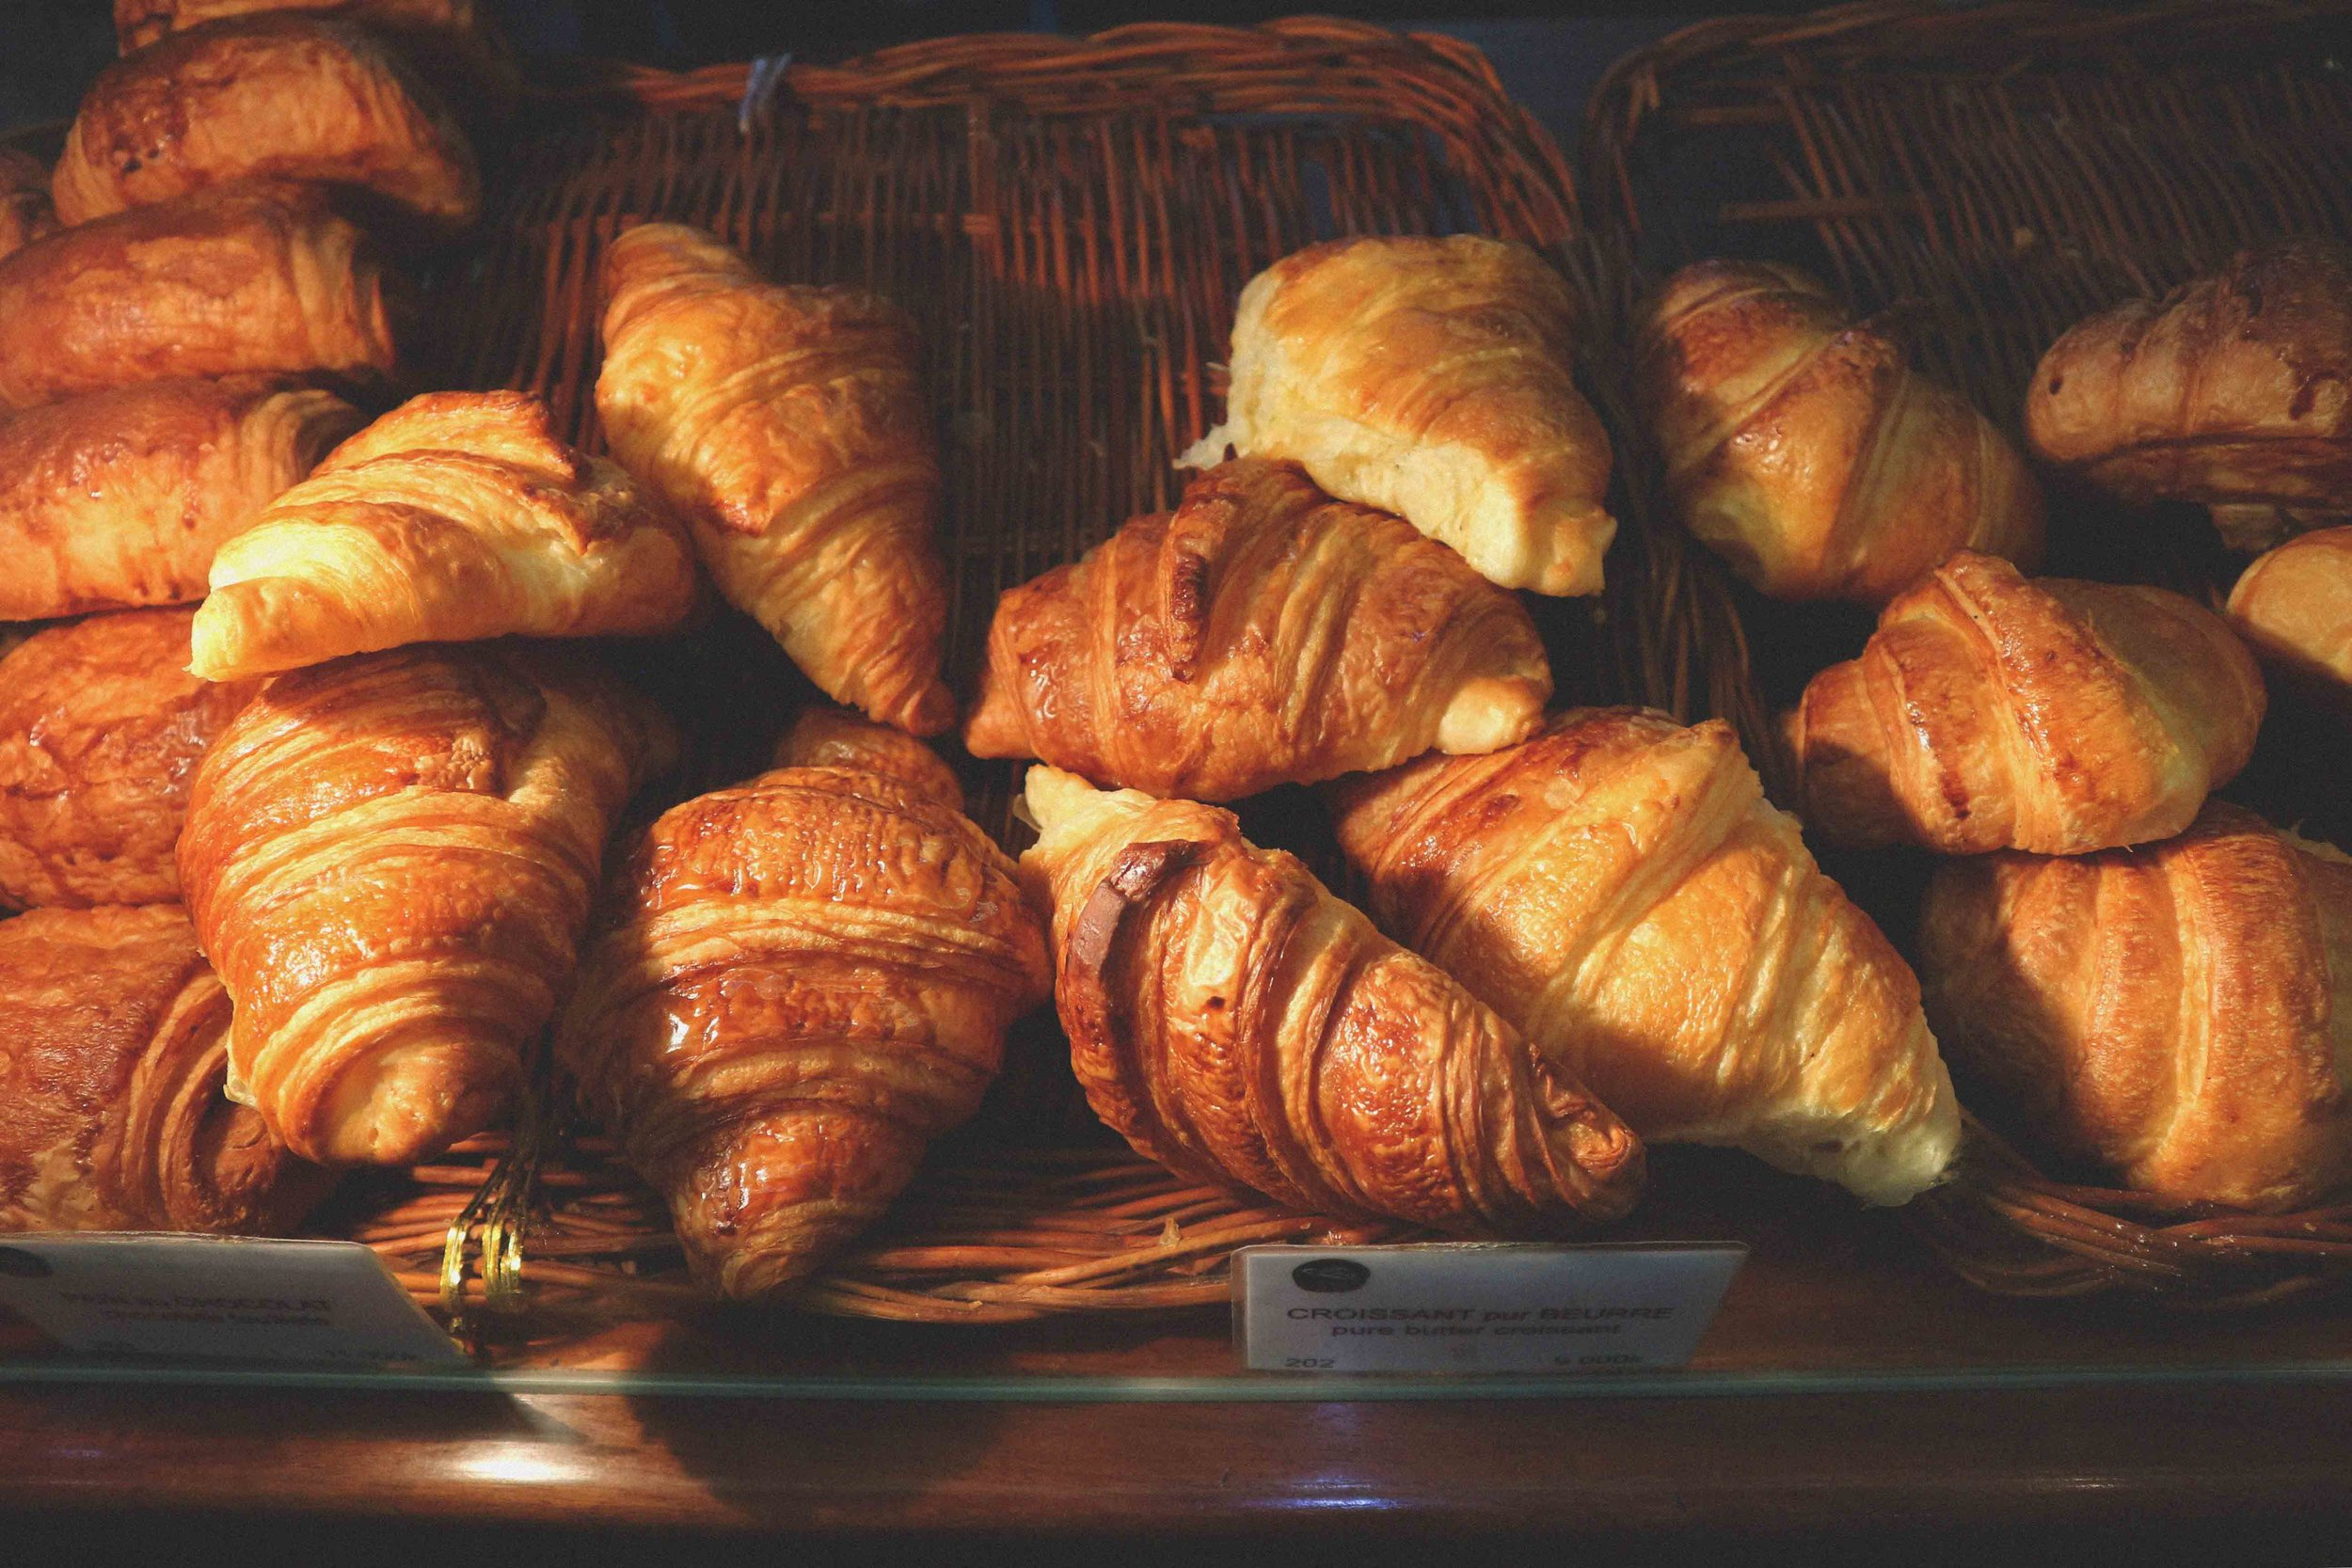 Croissants in Le Banneton